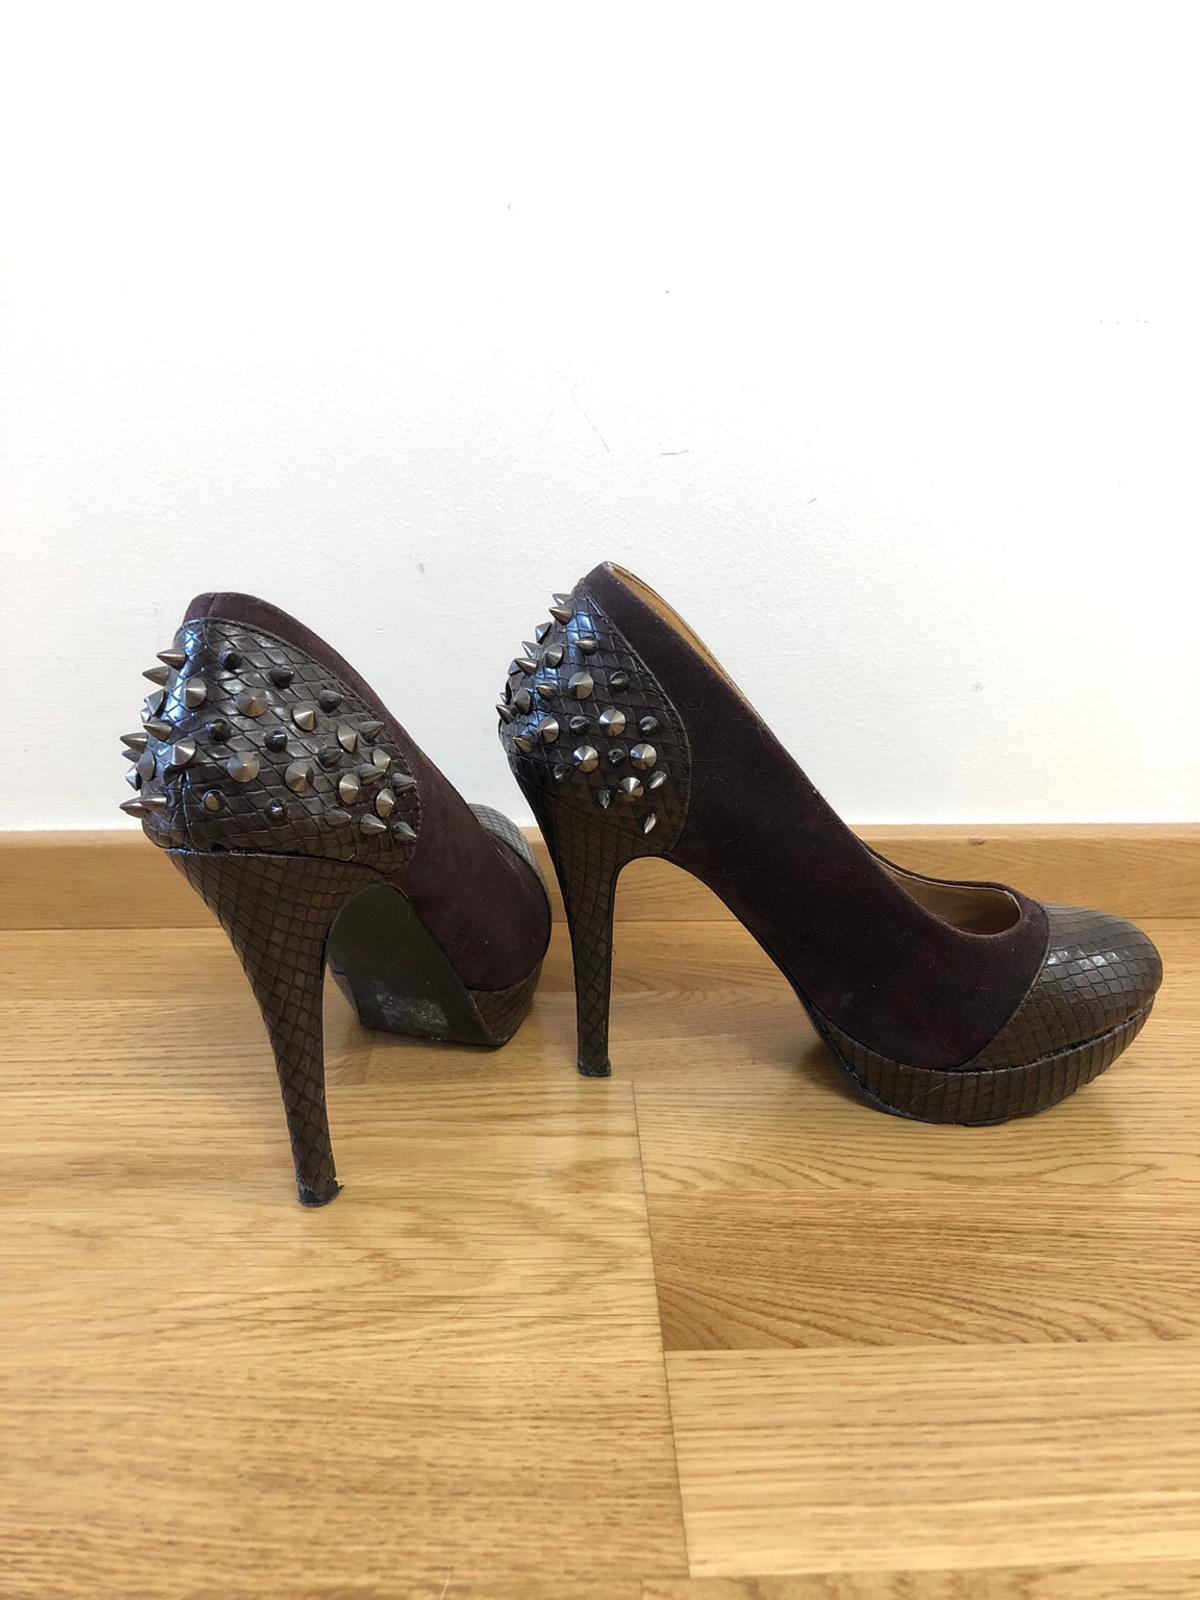 e02a136d8aead0 High Heels braun in 9020 Klagenfurt for €25.00 for sale - Shpock